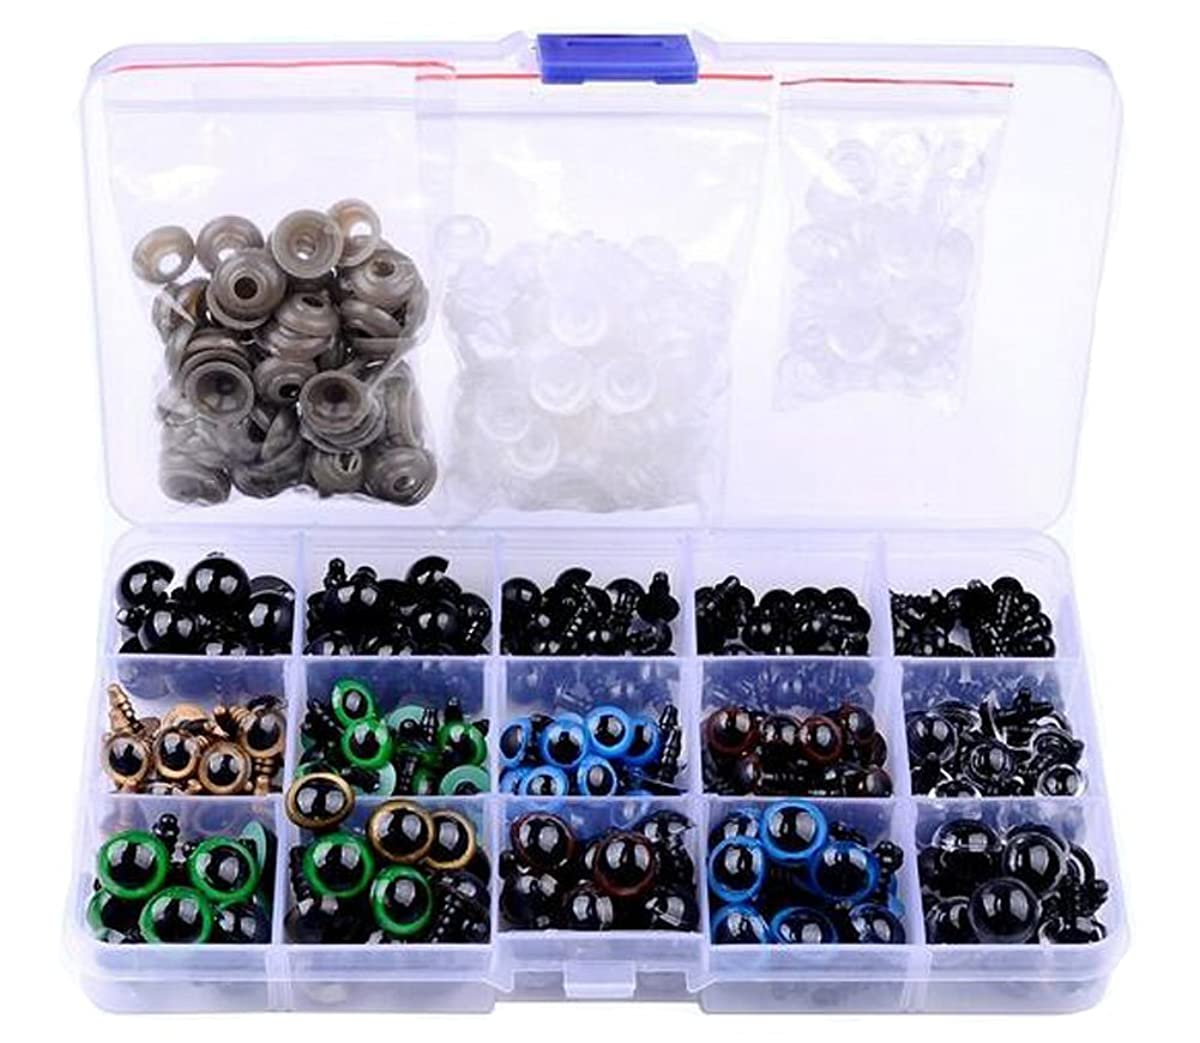 1Box(264Pcs) 6mm-12mm Plastic Safety Noses Eyes DIY Sewing Craft Buttons with Washers for Bear Doll Puppet Animal and All Stuffed Toys(Mix Color)